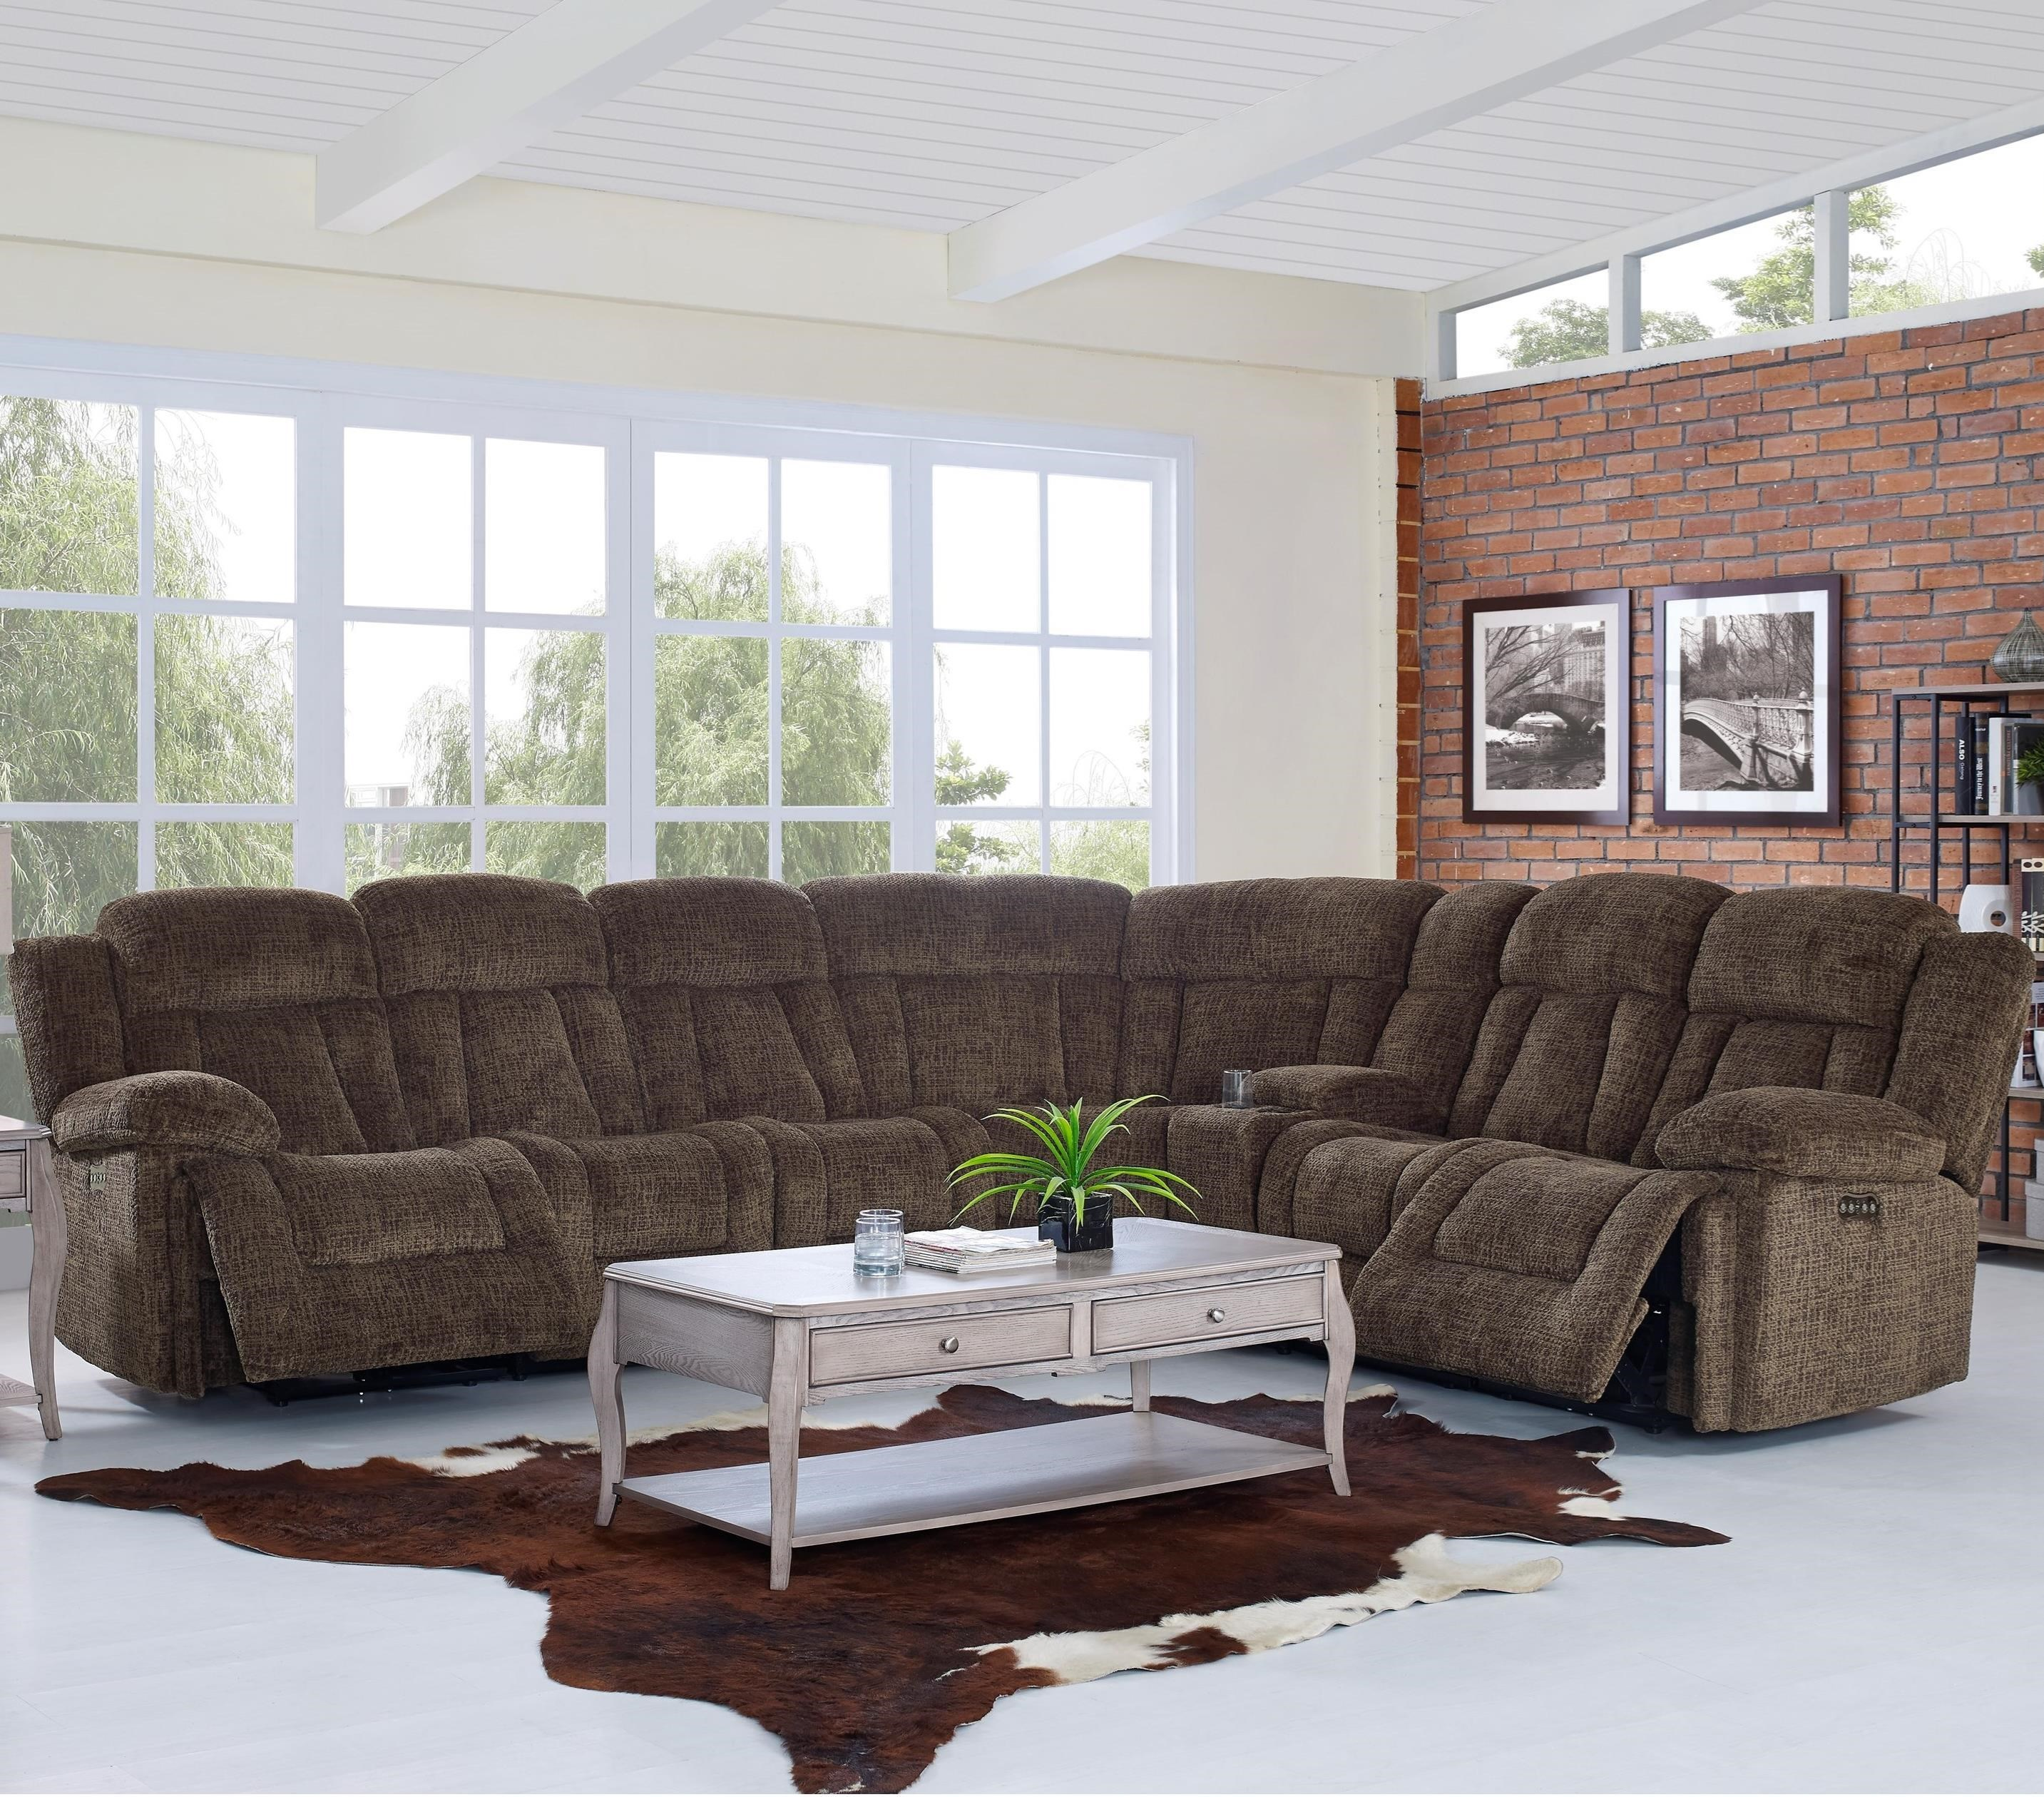 ... Power Reclining Sectional Sofa. Components Shown May Not Represent Exact Features Indicated  sc 1 st  Great American Home Store : power sectional sofa - Sectionals, Sofas & Couches